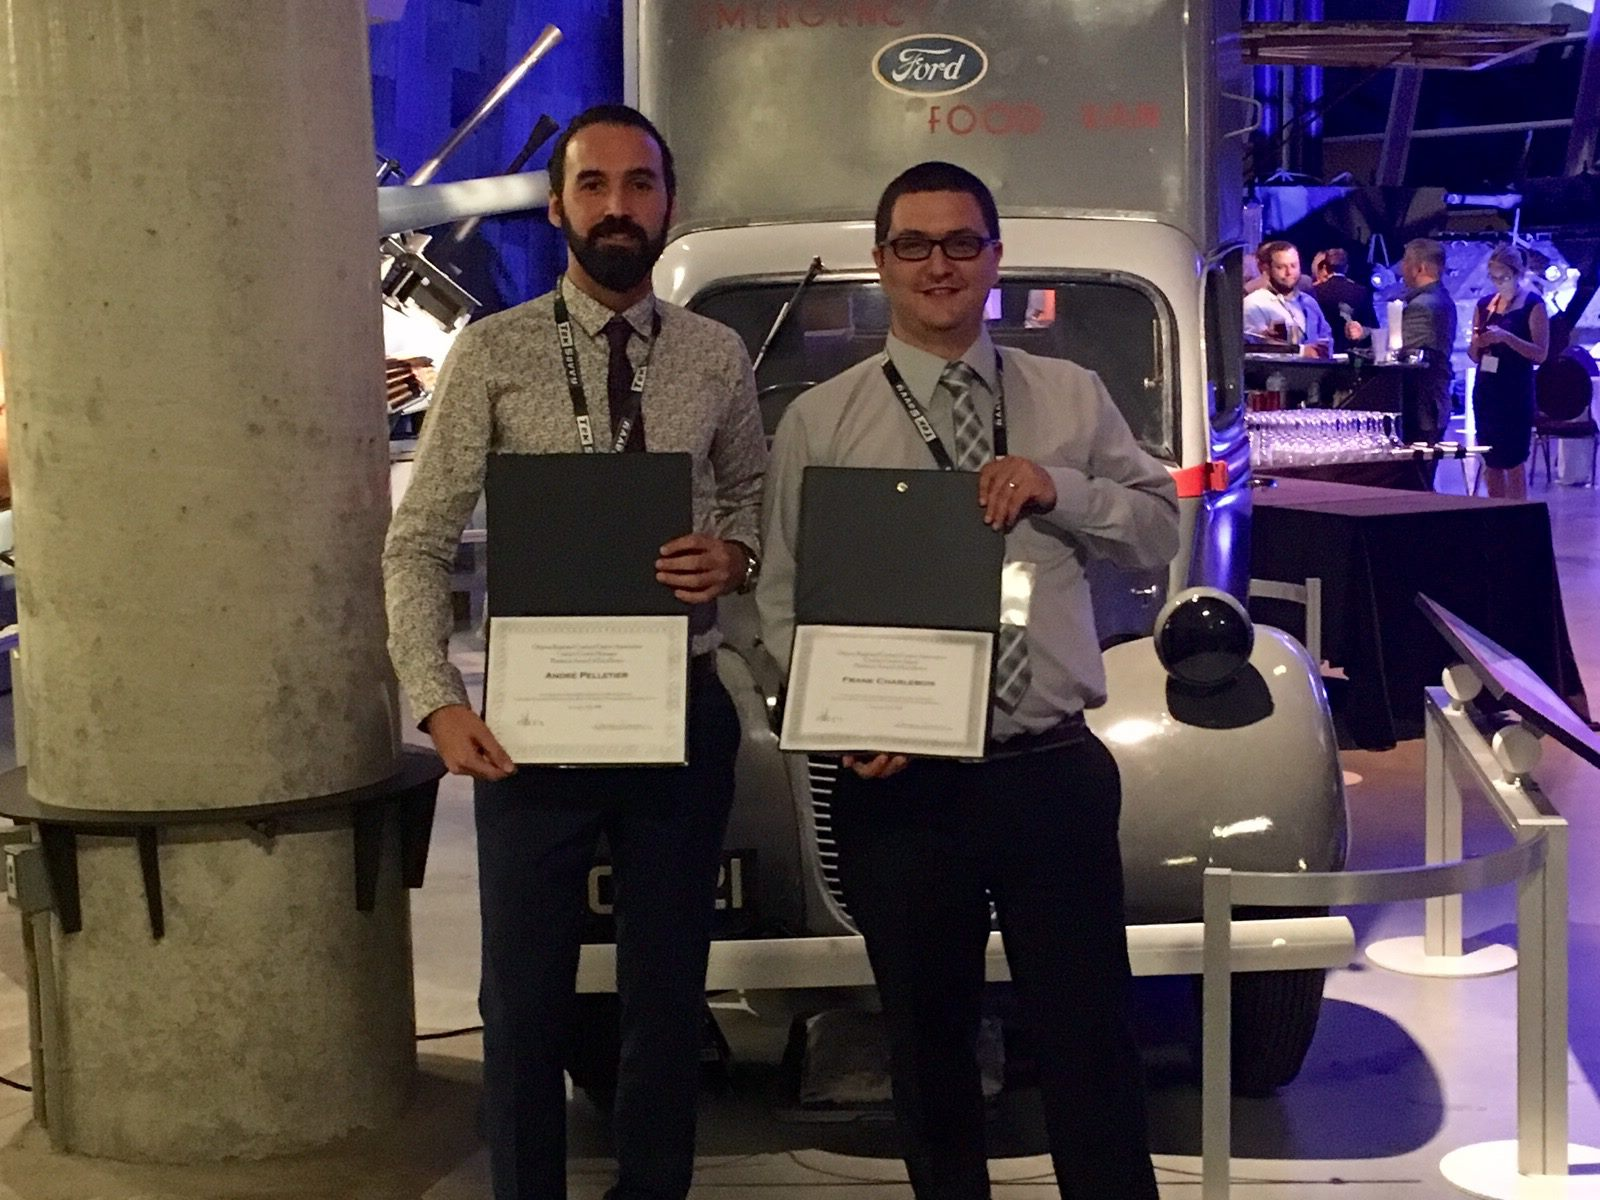 Versature's Support Team members Frank and Andre win at the 2016 ORCCA Call Centre Awards!